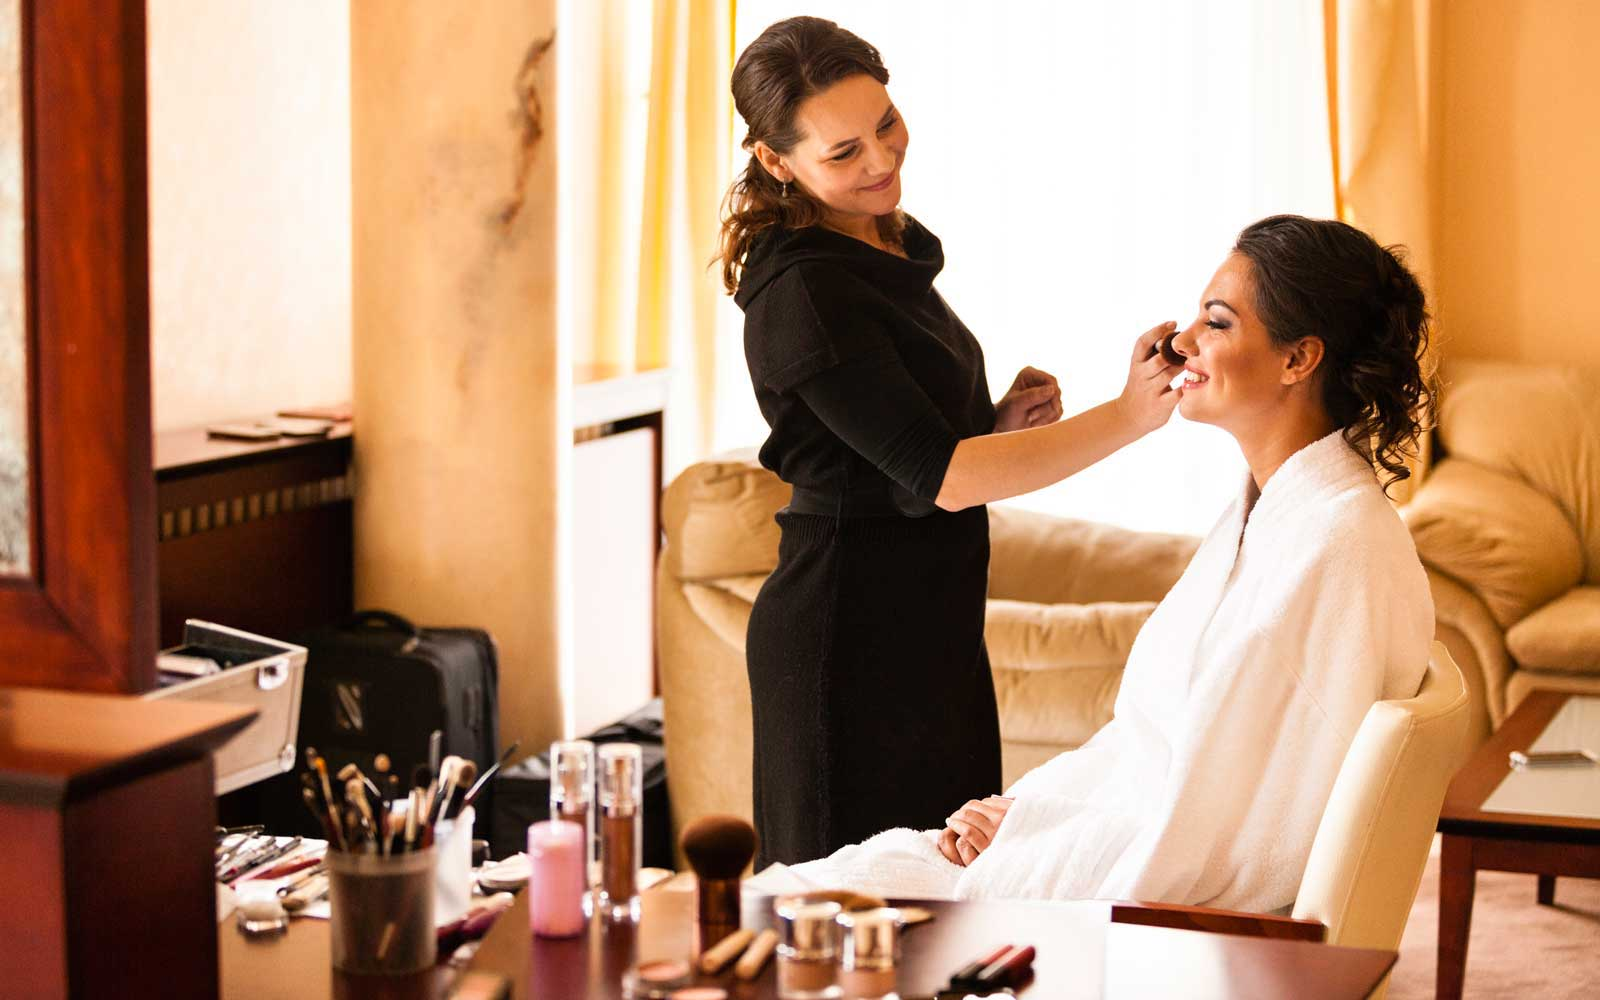 Stylist Doing Makeup in a Hotel Room